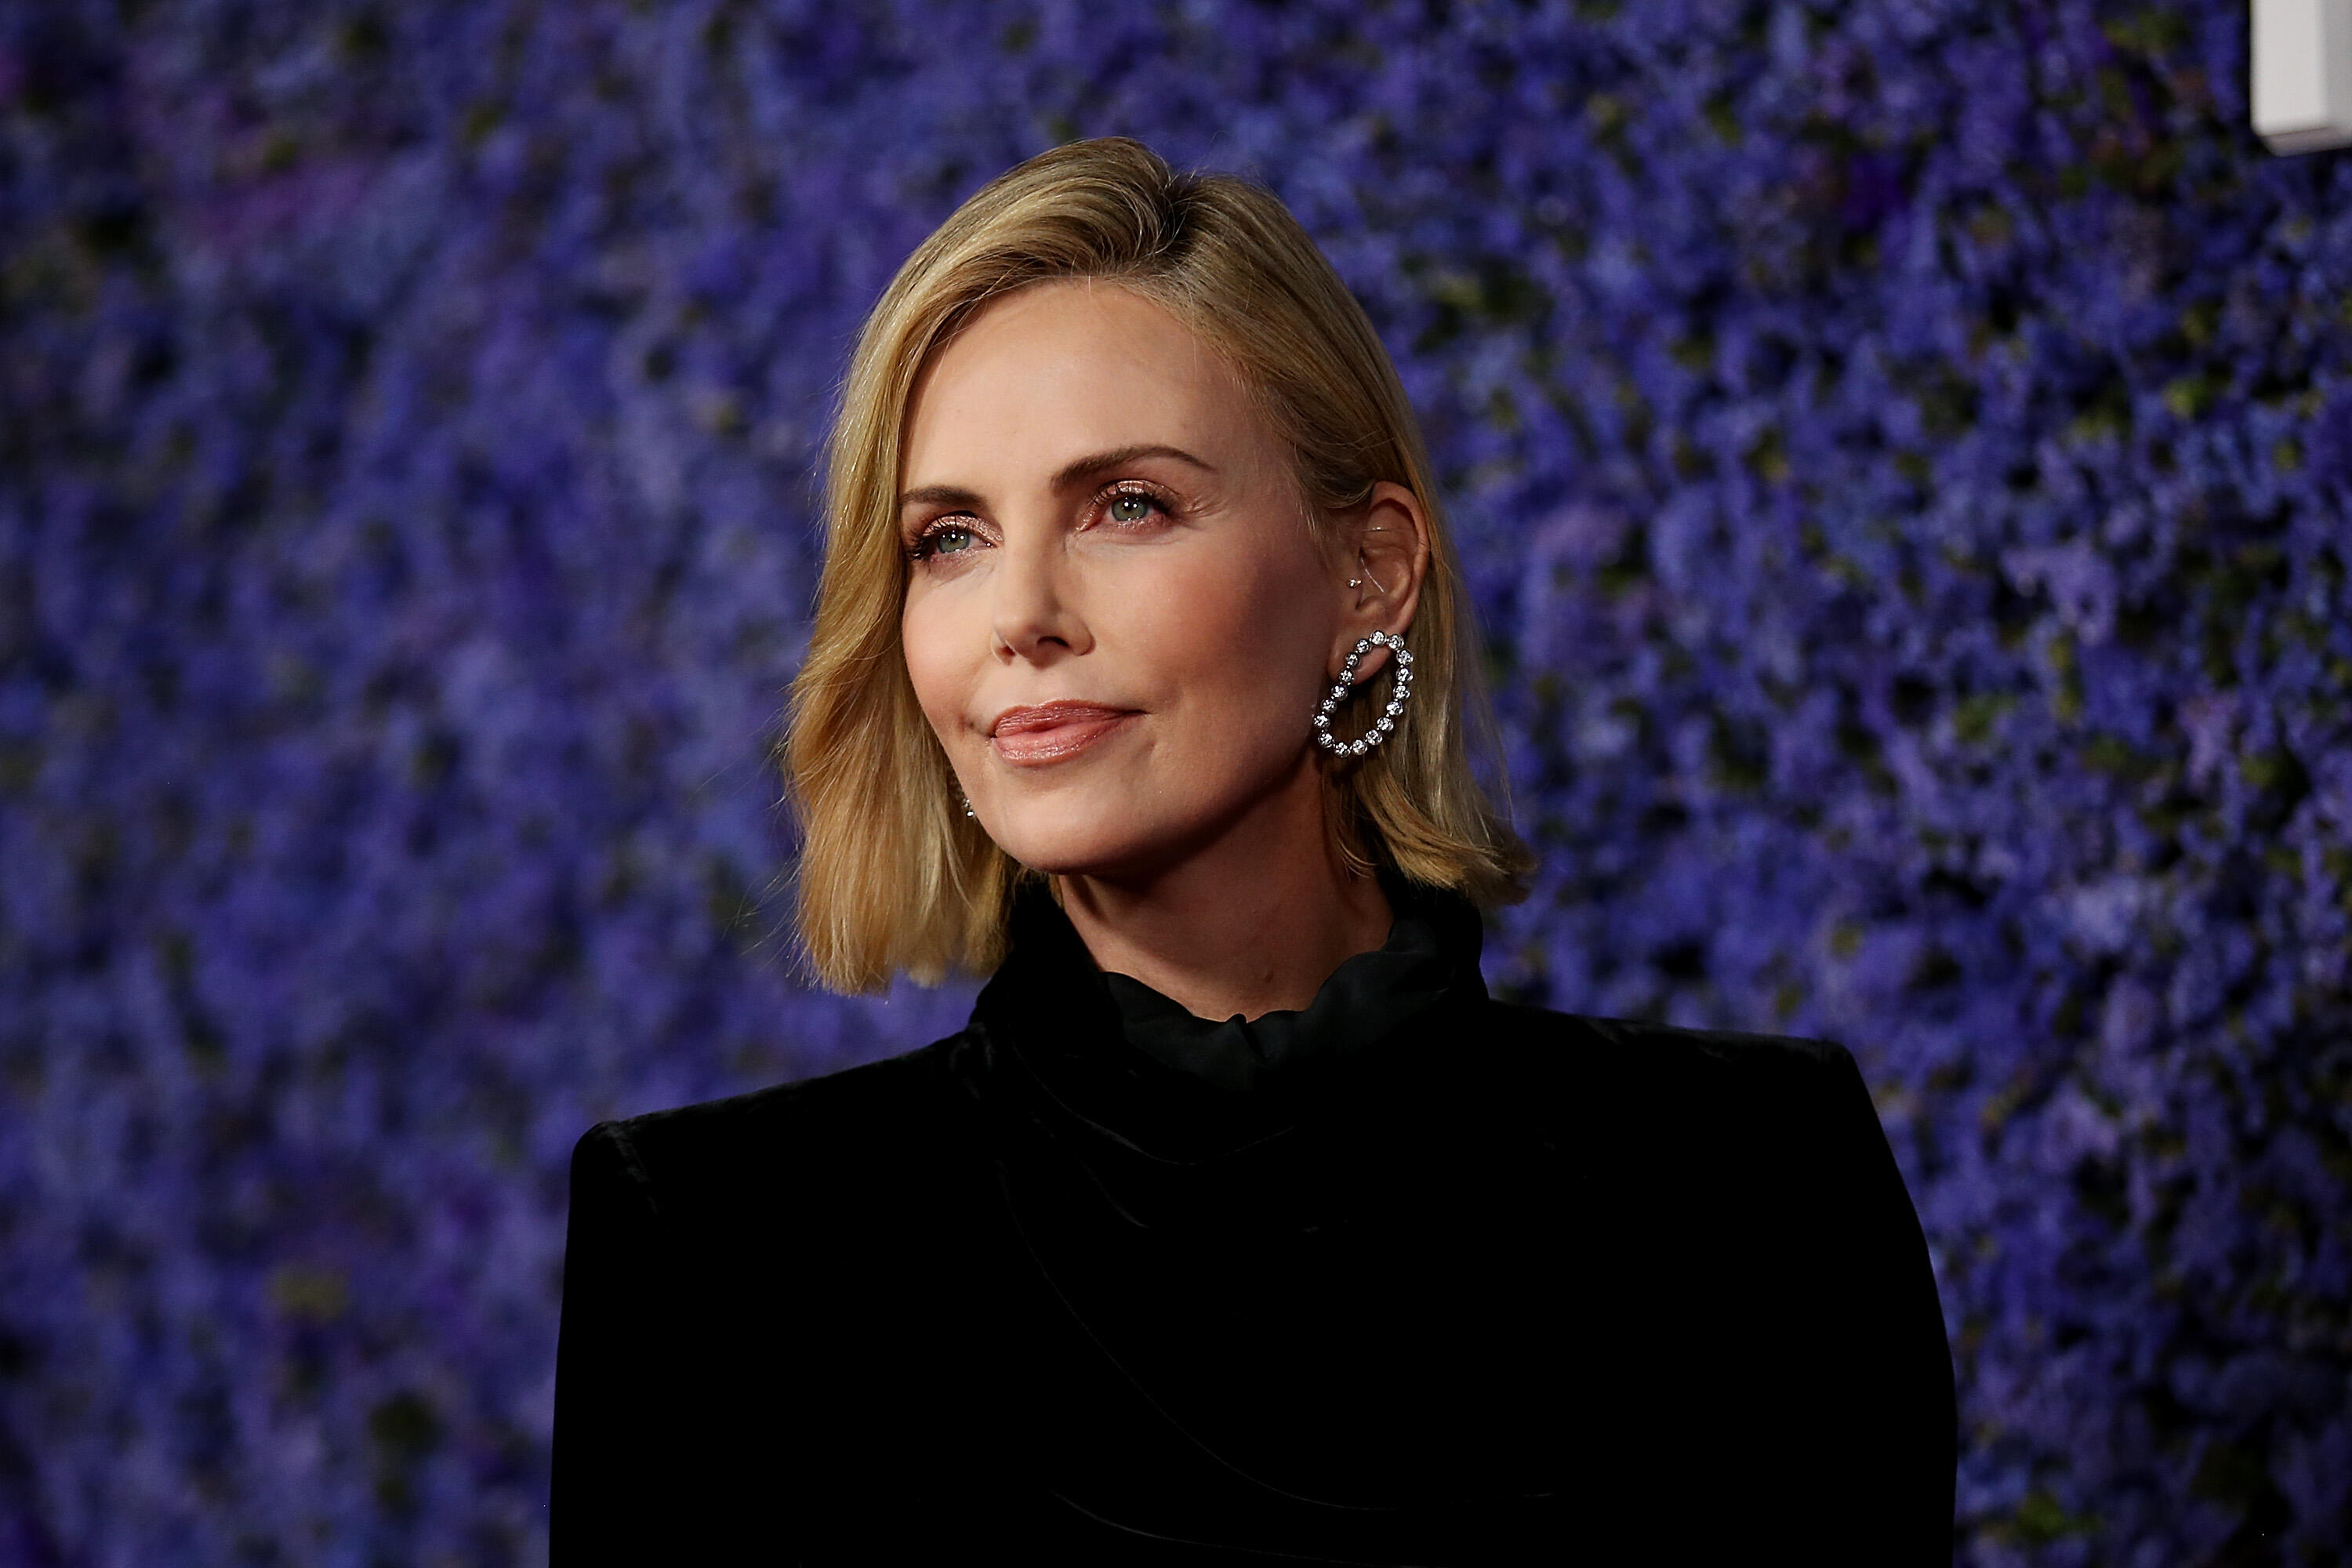 Charlize Theron Is So Self-Aware And You Need To Hear What She Has To Say